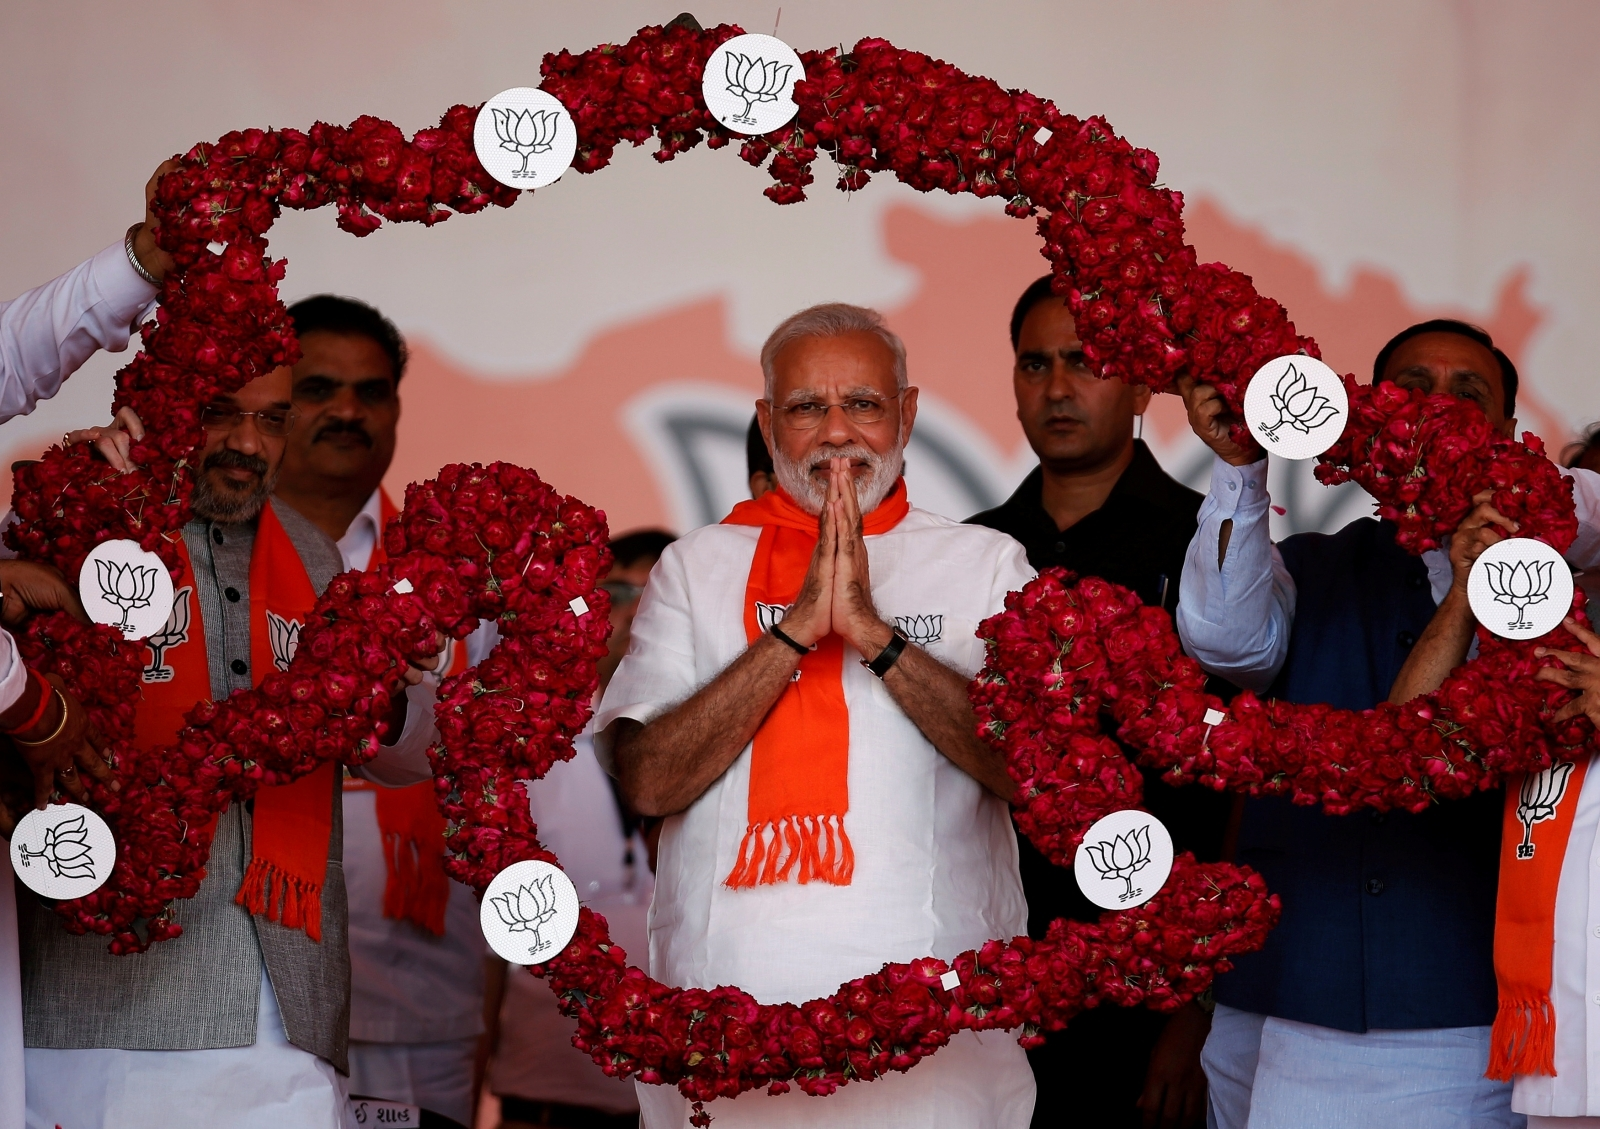 India Elections 2019: Narendra Modi Secures Second Term With Landslide Win